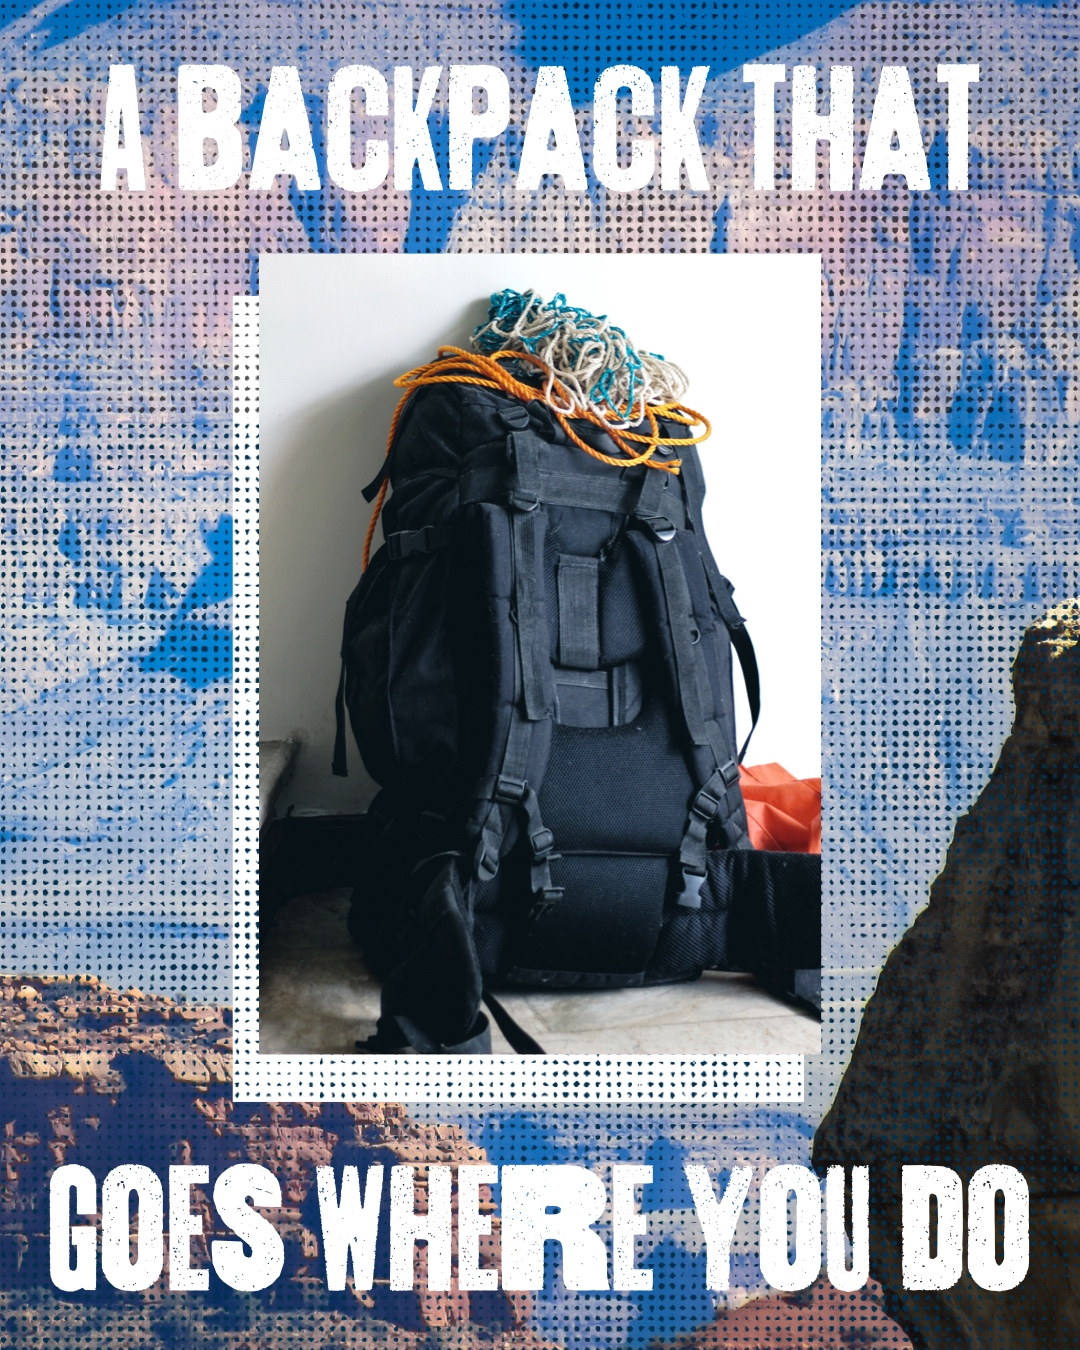 Canyon Photo Backpack Instagram Portrait Ad A backpack that Goes where you do